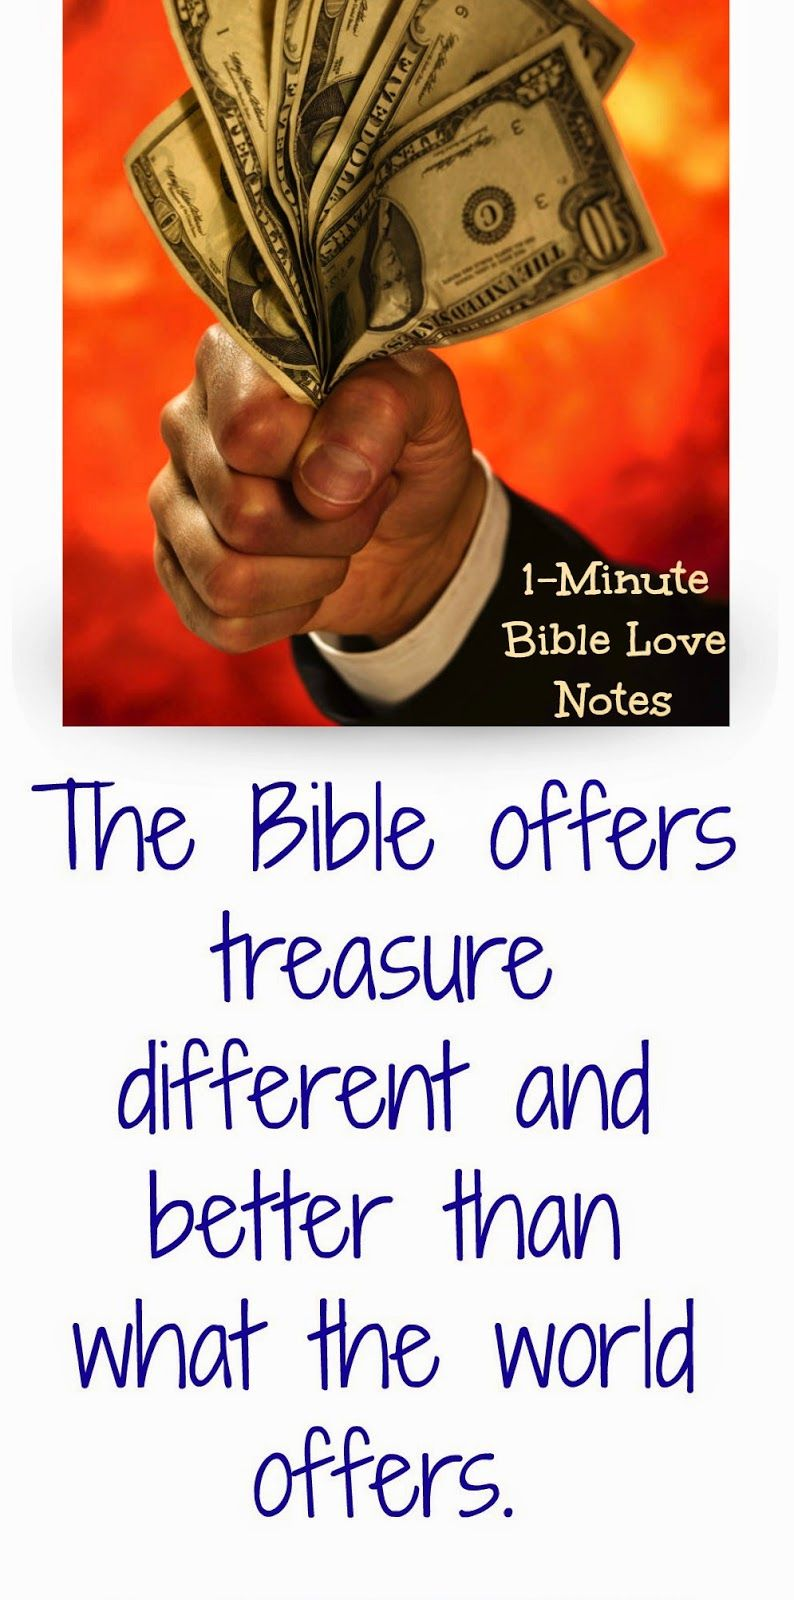 We have something more valuable than gold in God's Word. This 1-minute devotion explains the God's Word * Revives the soul * Makes us wise * Gives us insight * Warns us of harm...and more.